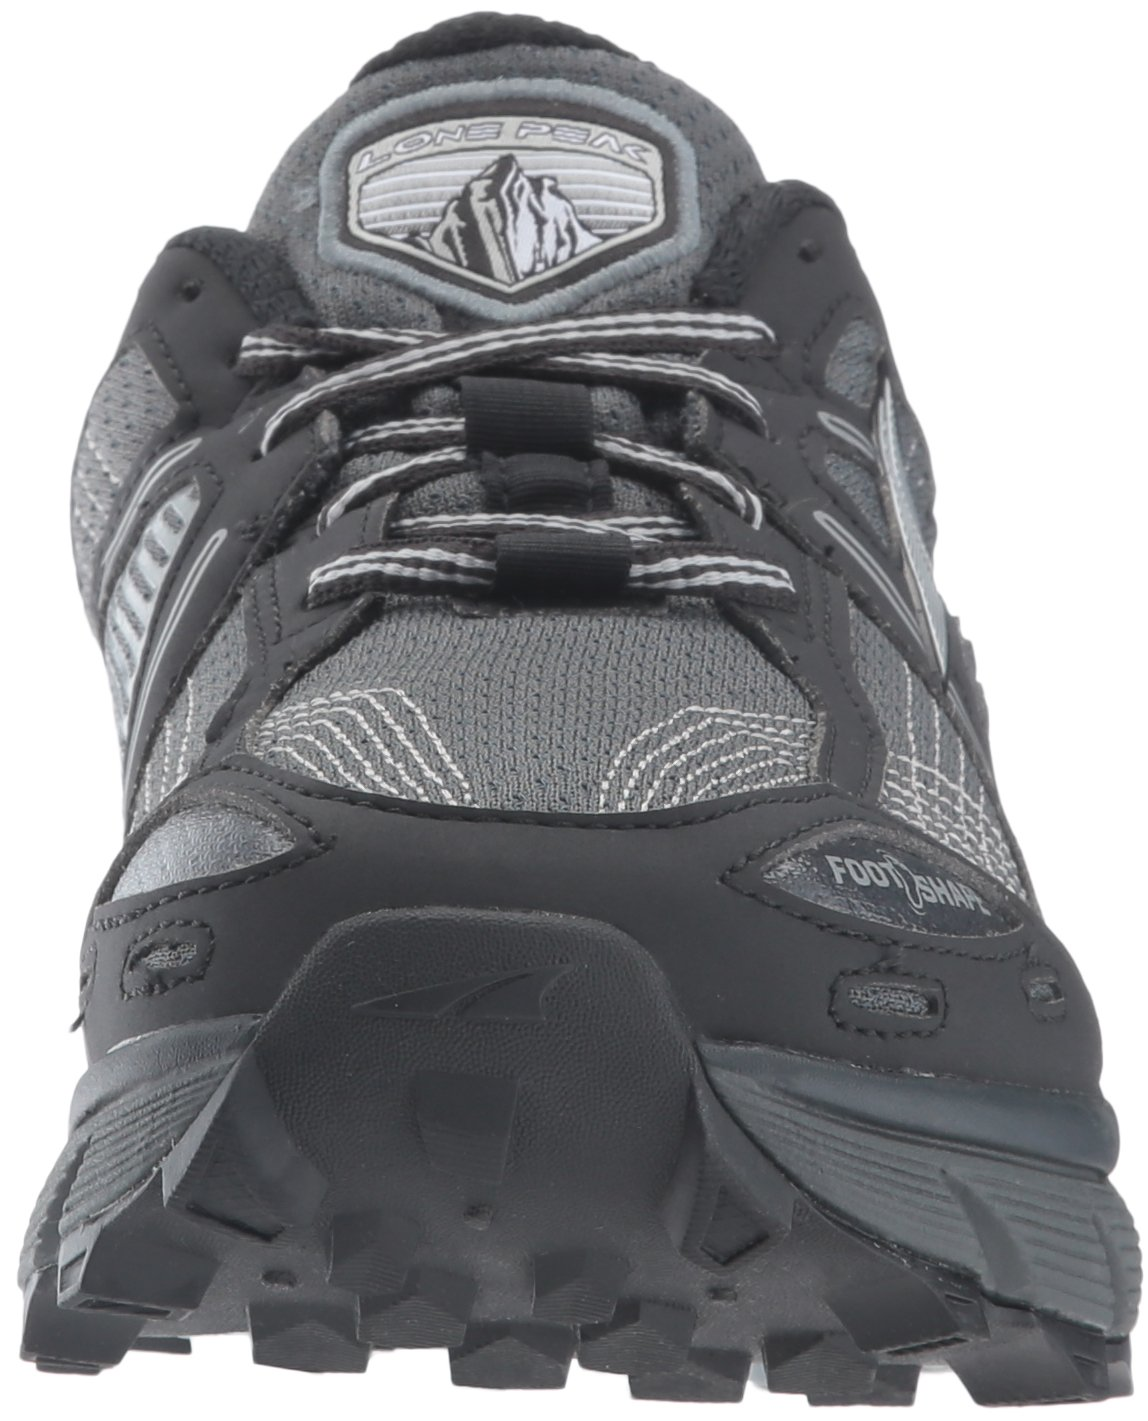 Altra Women's Lone Peak 3.5 Running Shoe, Black, 8.5 B US by Altra (Image #4)